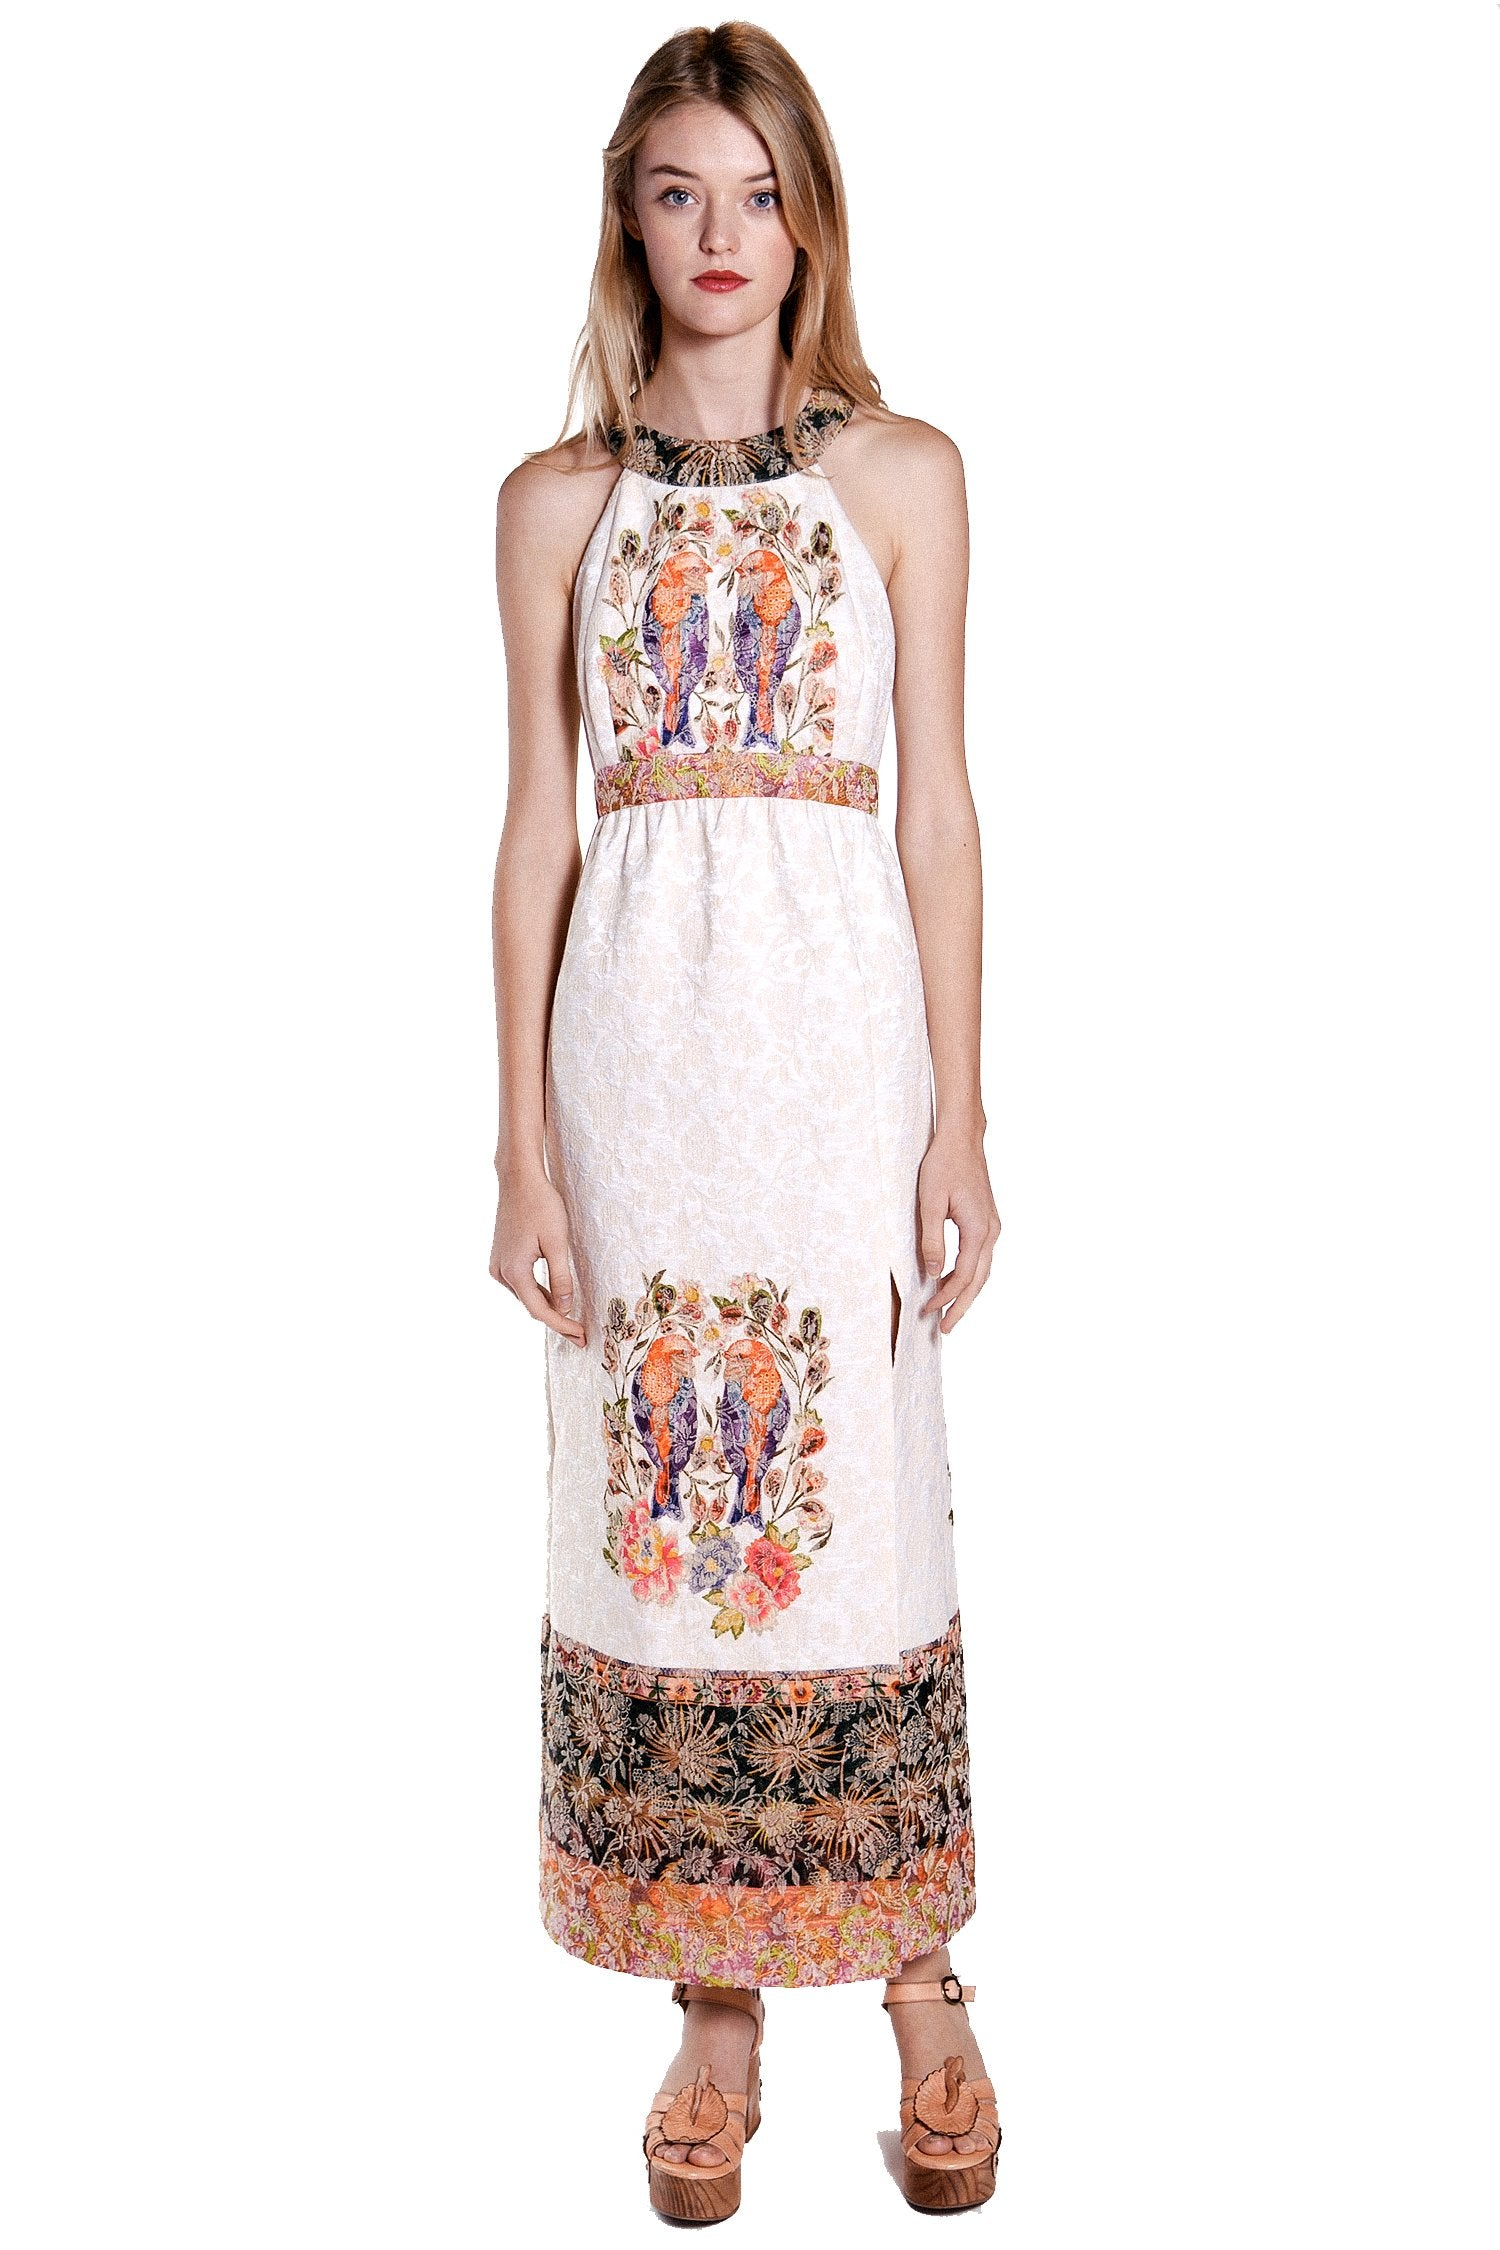 Love Birds Cameo Medley Dress - Anna Sui